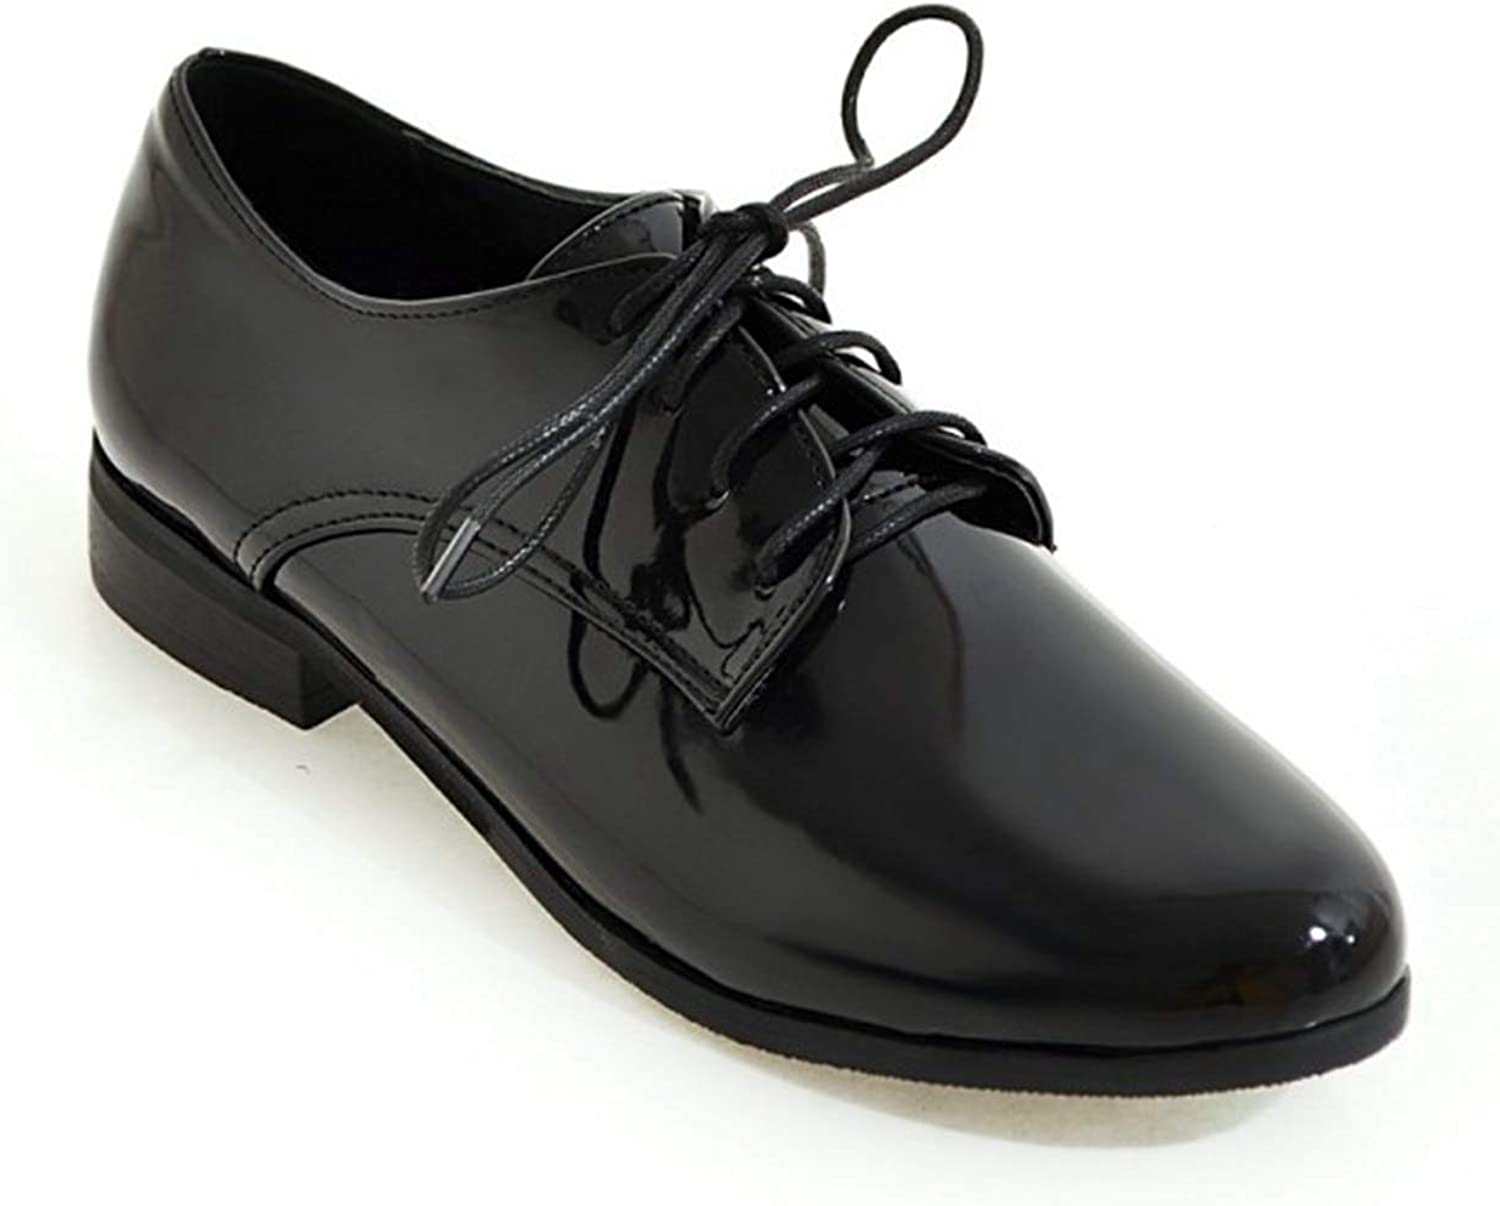 Greuses Plus Size 34-50 Spring Women Oxford shoes Flats Loafers Ladies shoes Leather Lace Up Boat shoes Round Toe Flats